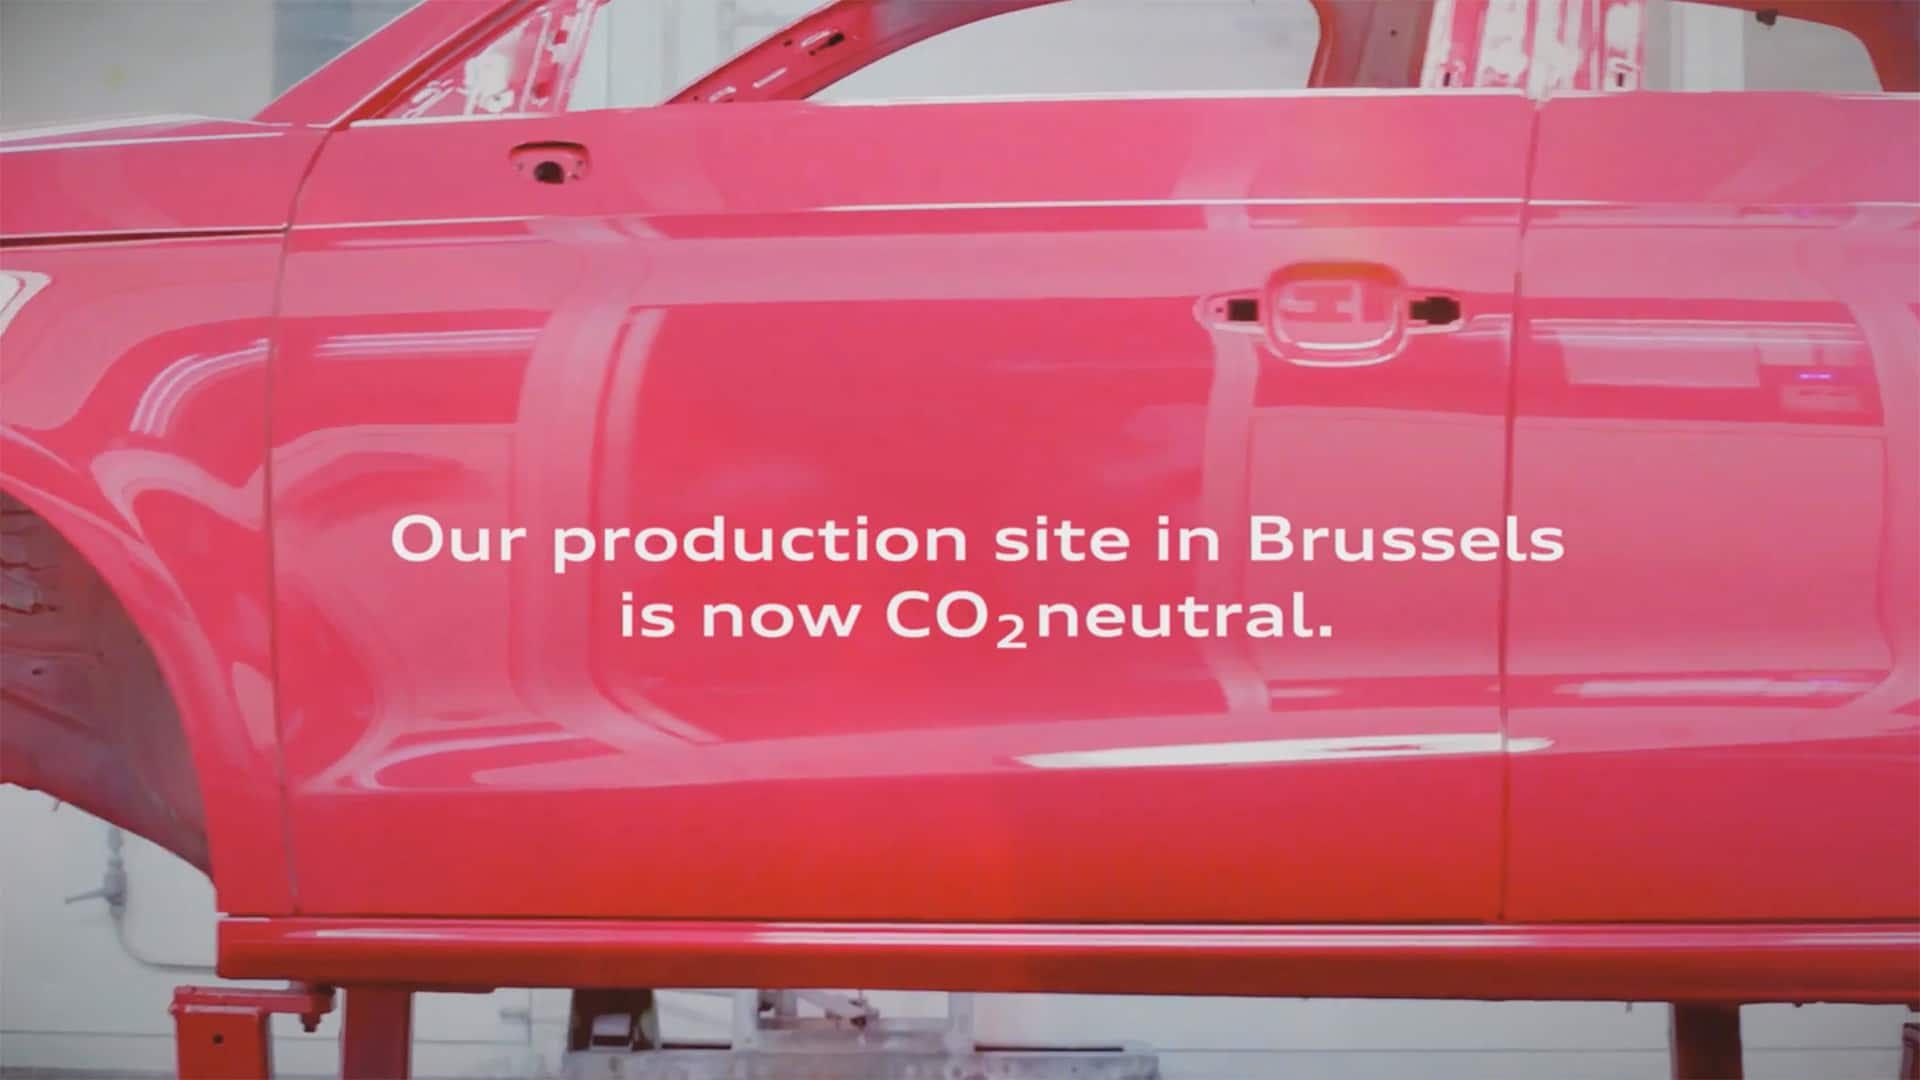 Audi Brussels is CO2-neutraal!